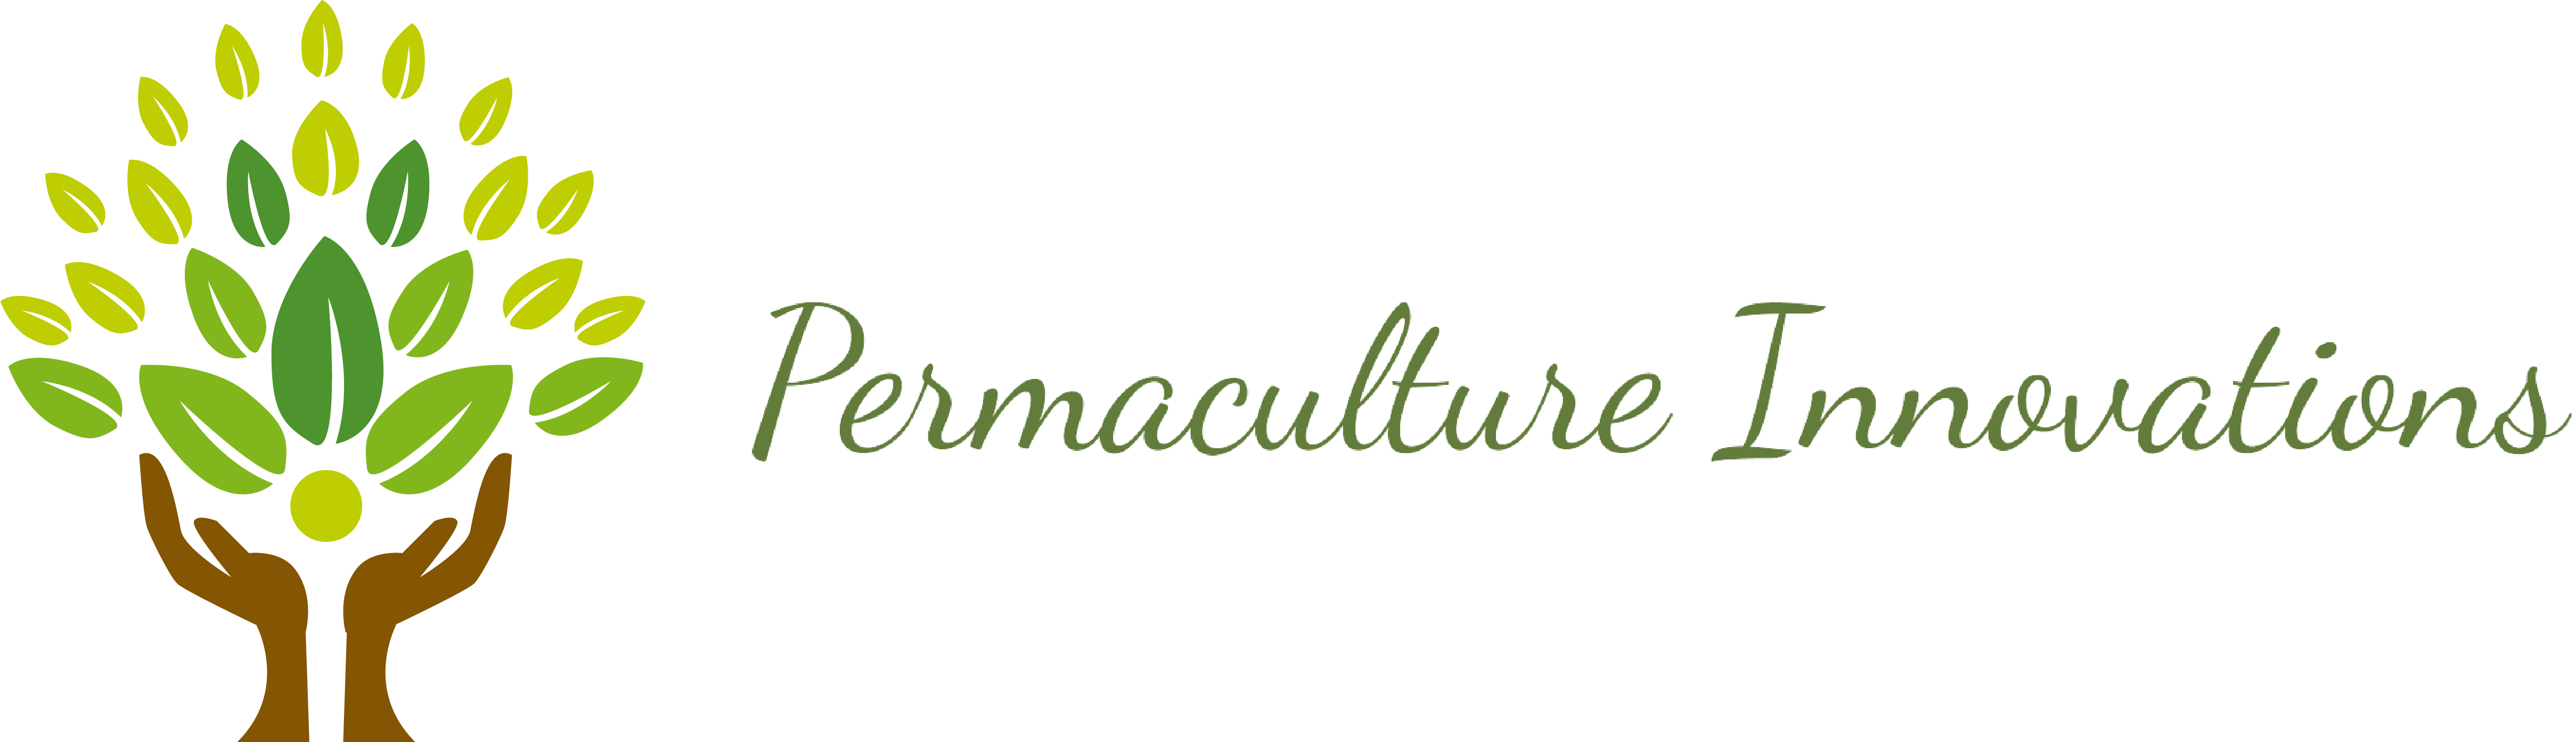 Permaculture Innovations